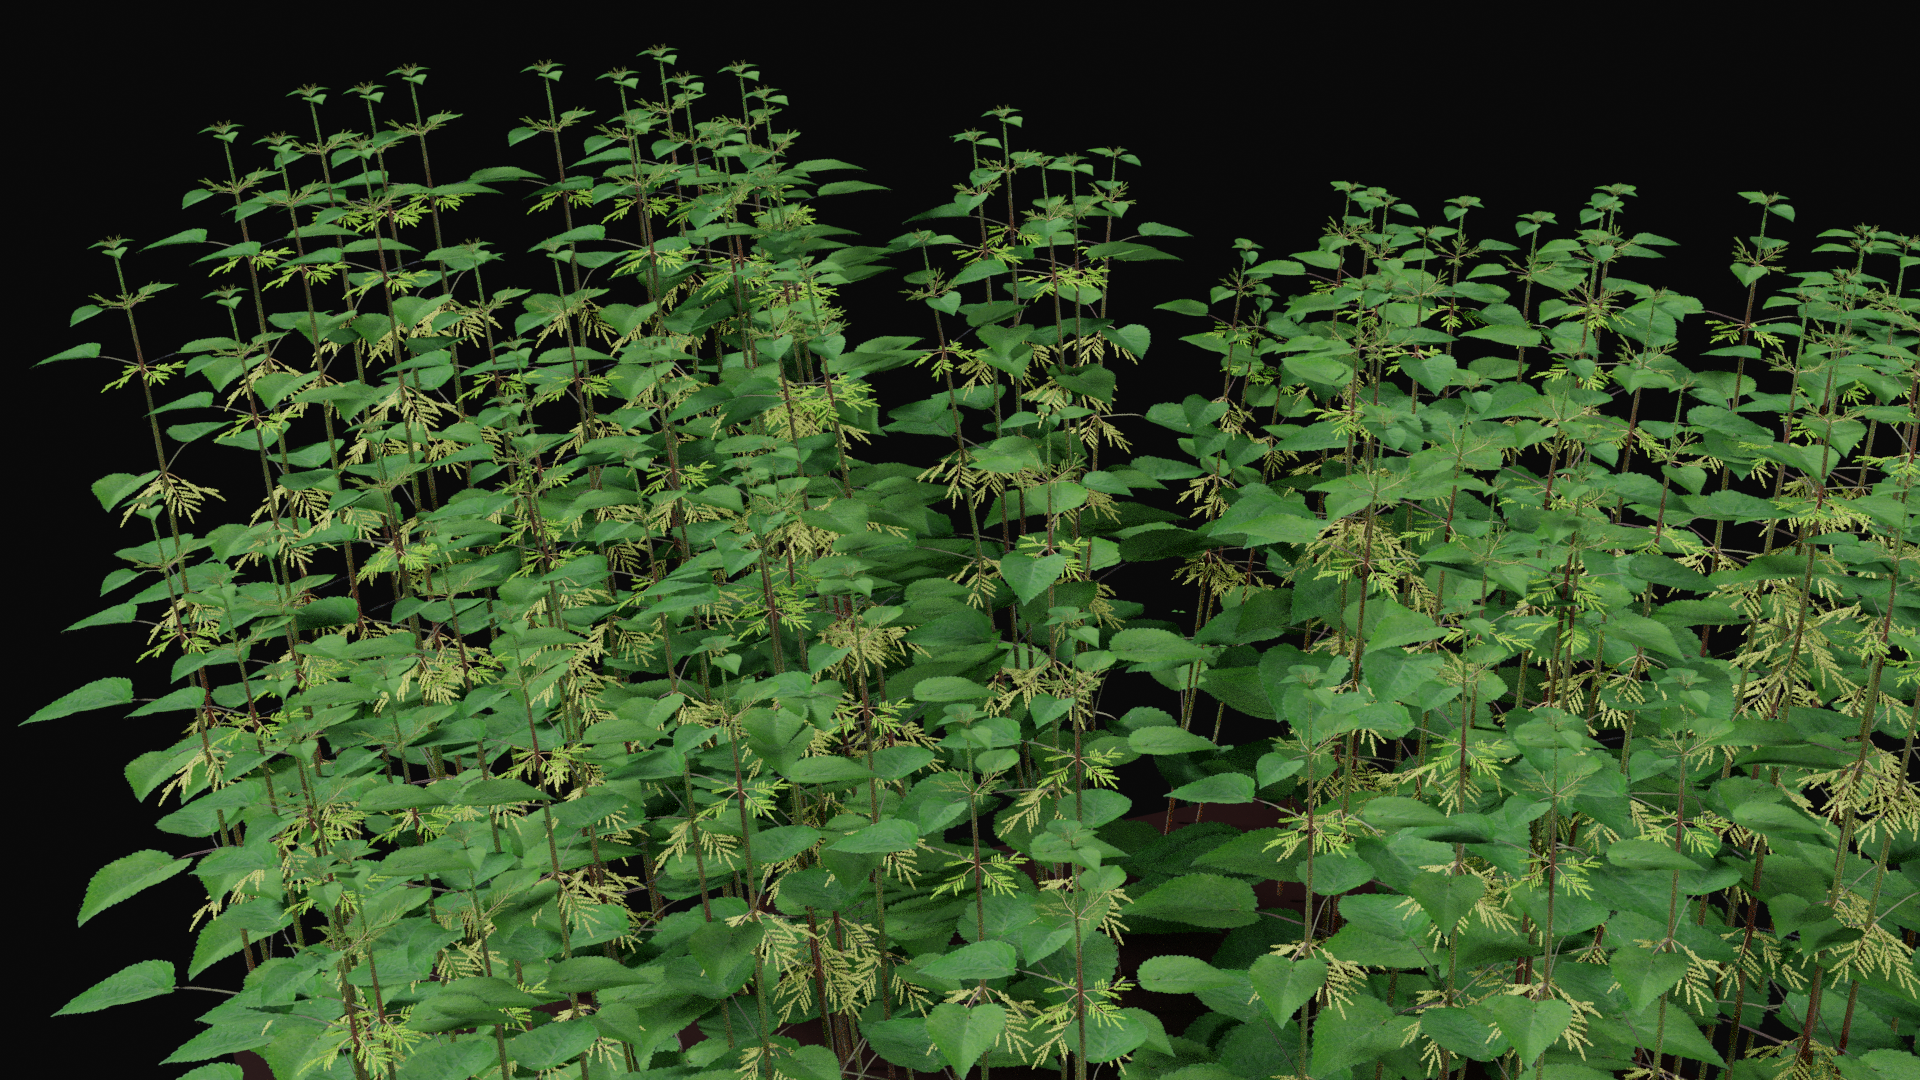 Stinging Nettle, Urtica dioica preview image 1